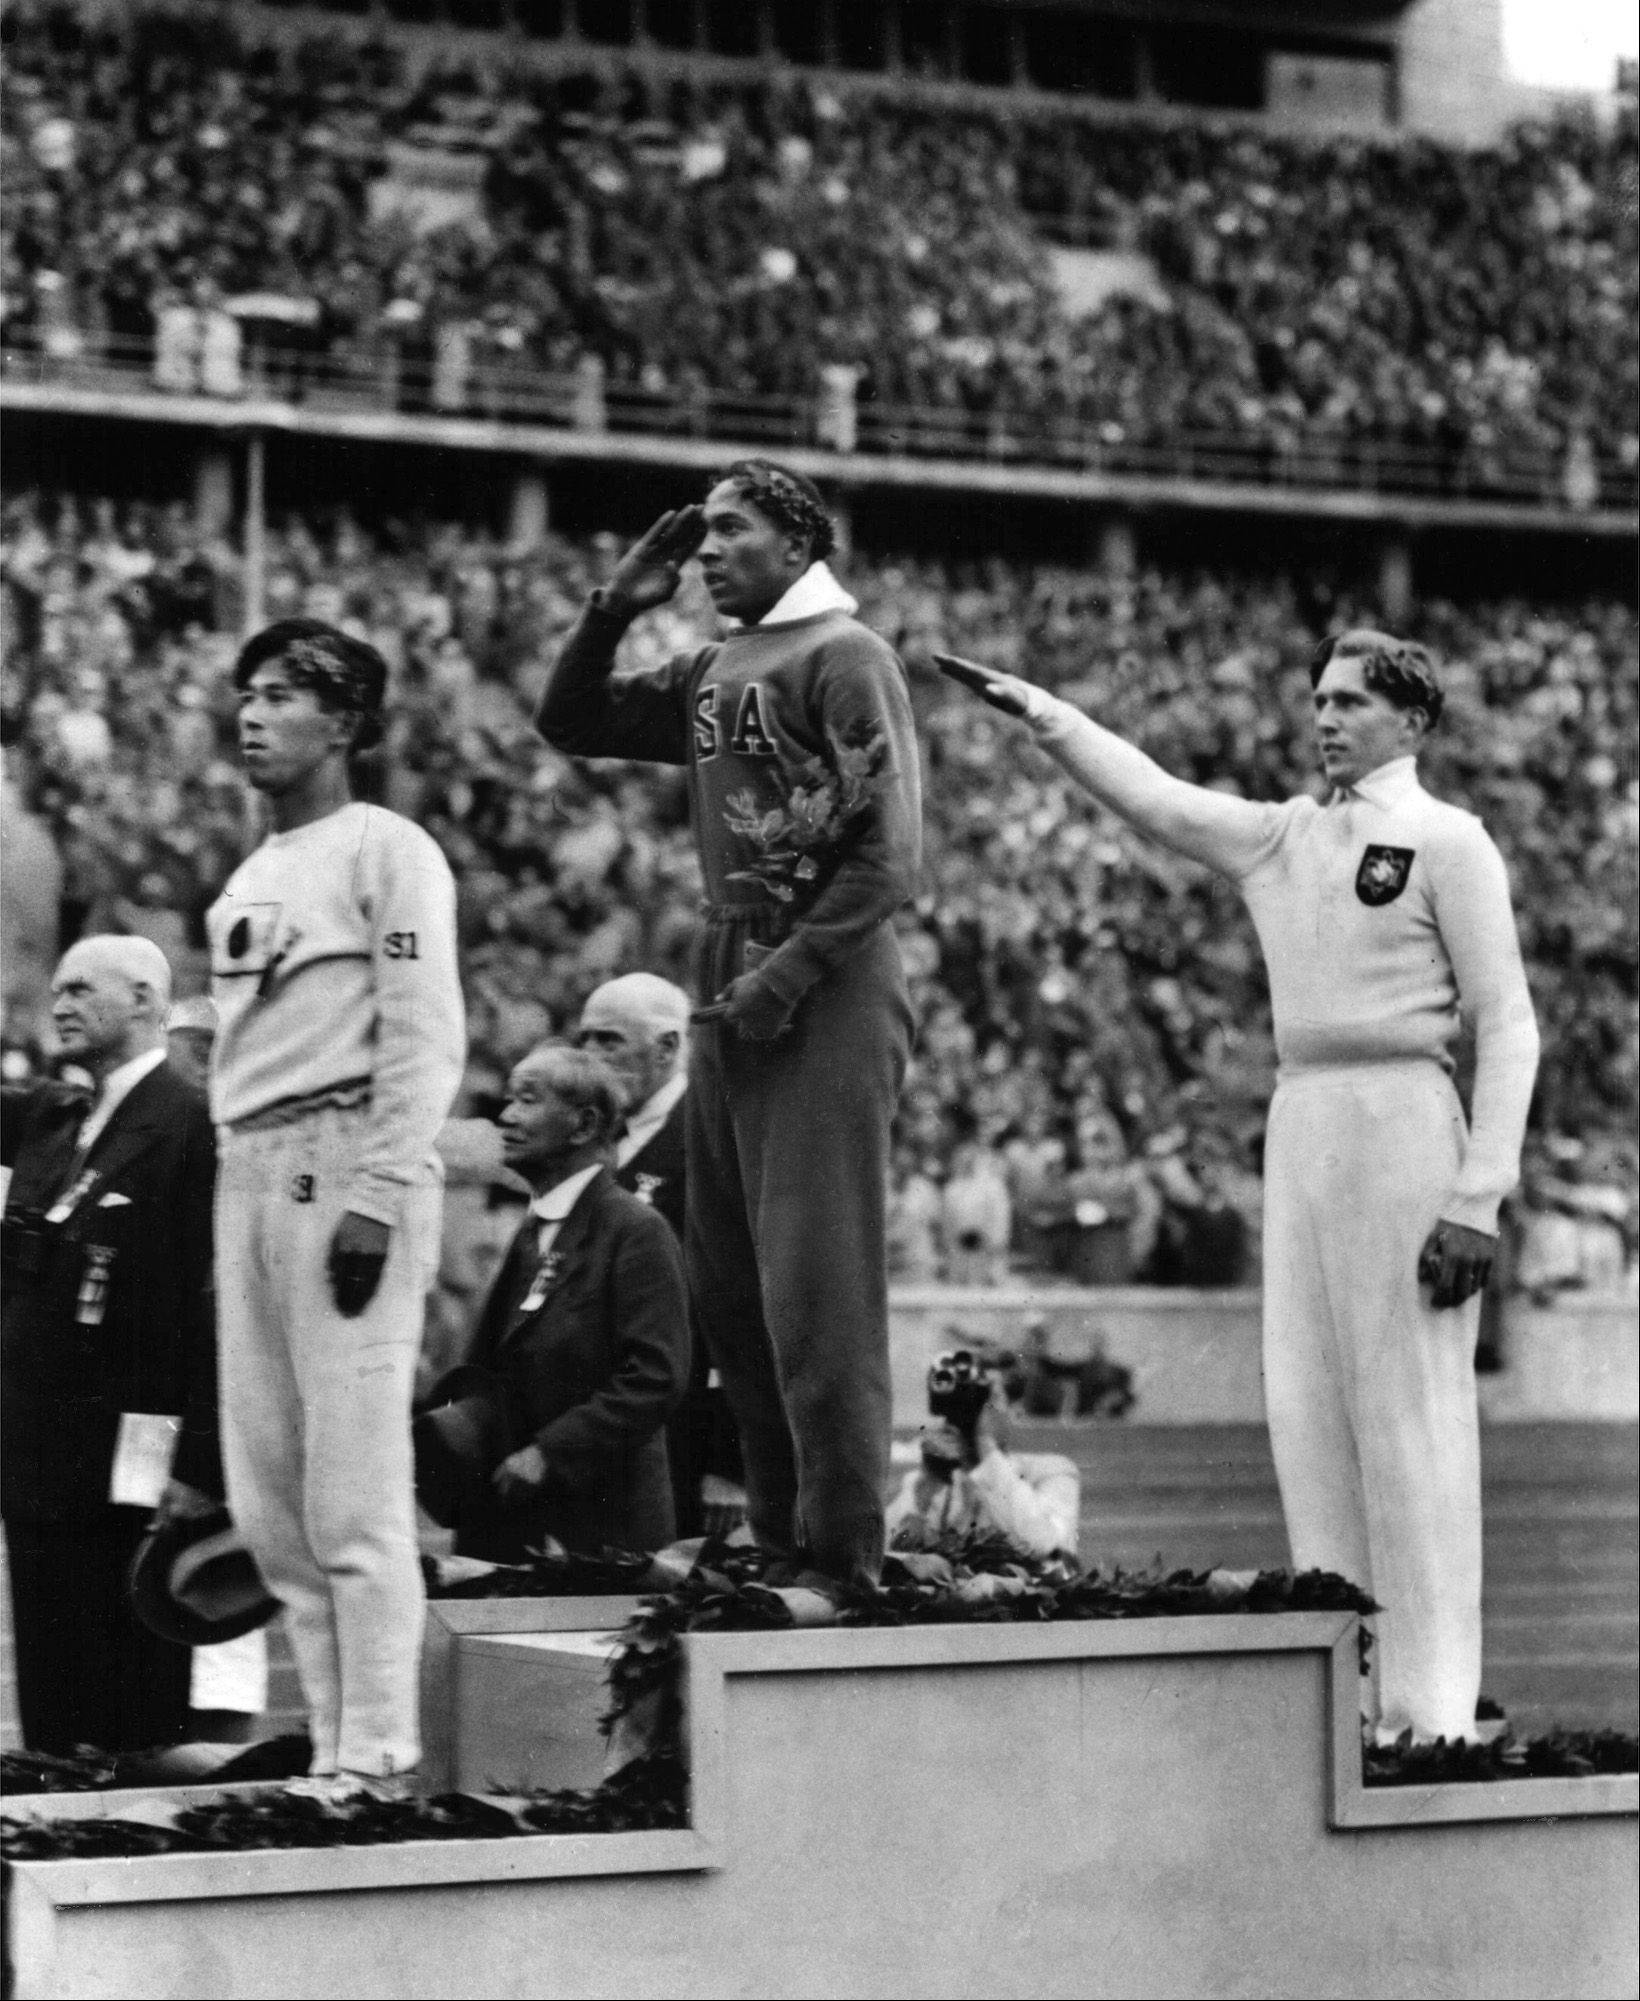 America's Jesse Owens, center, salutes during the presentation of his gold medal for the long jump during the 1936 Summer Olympics in Berlin.